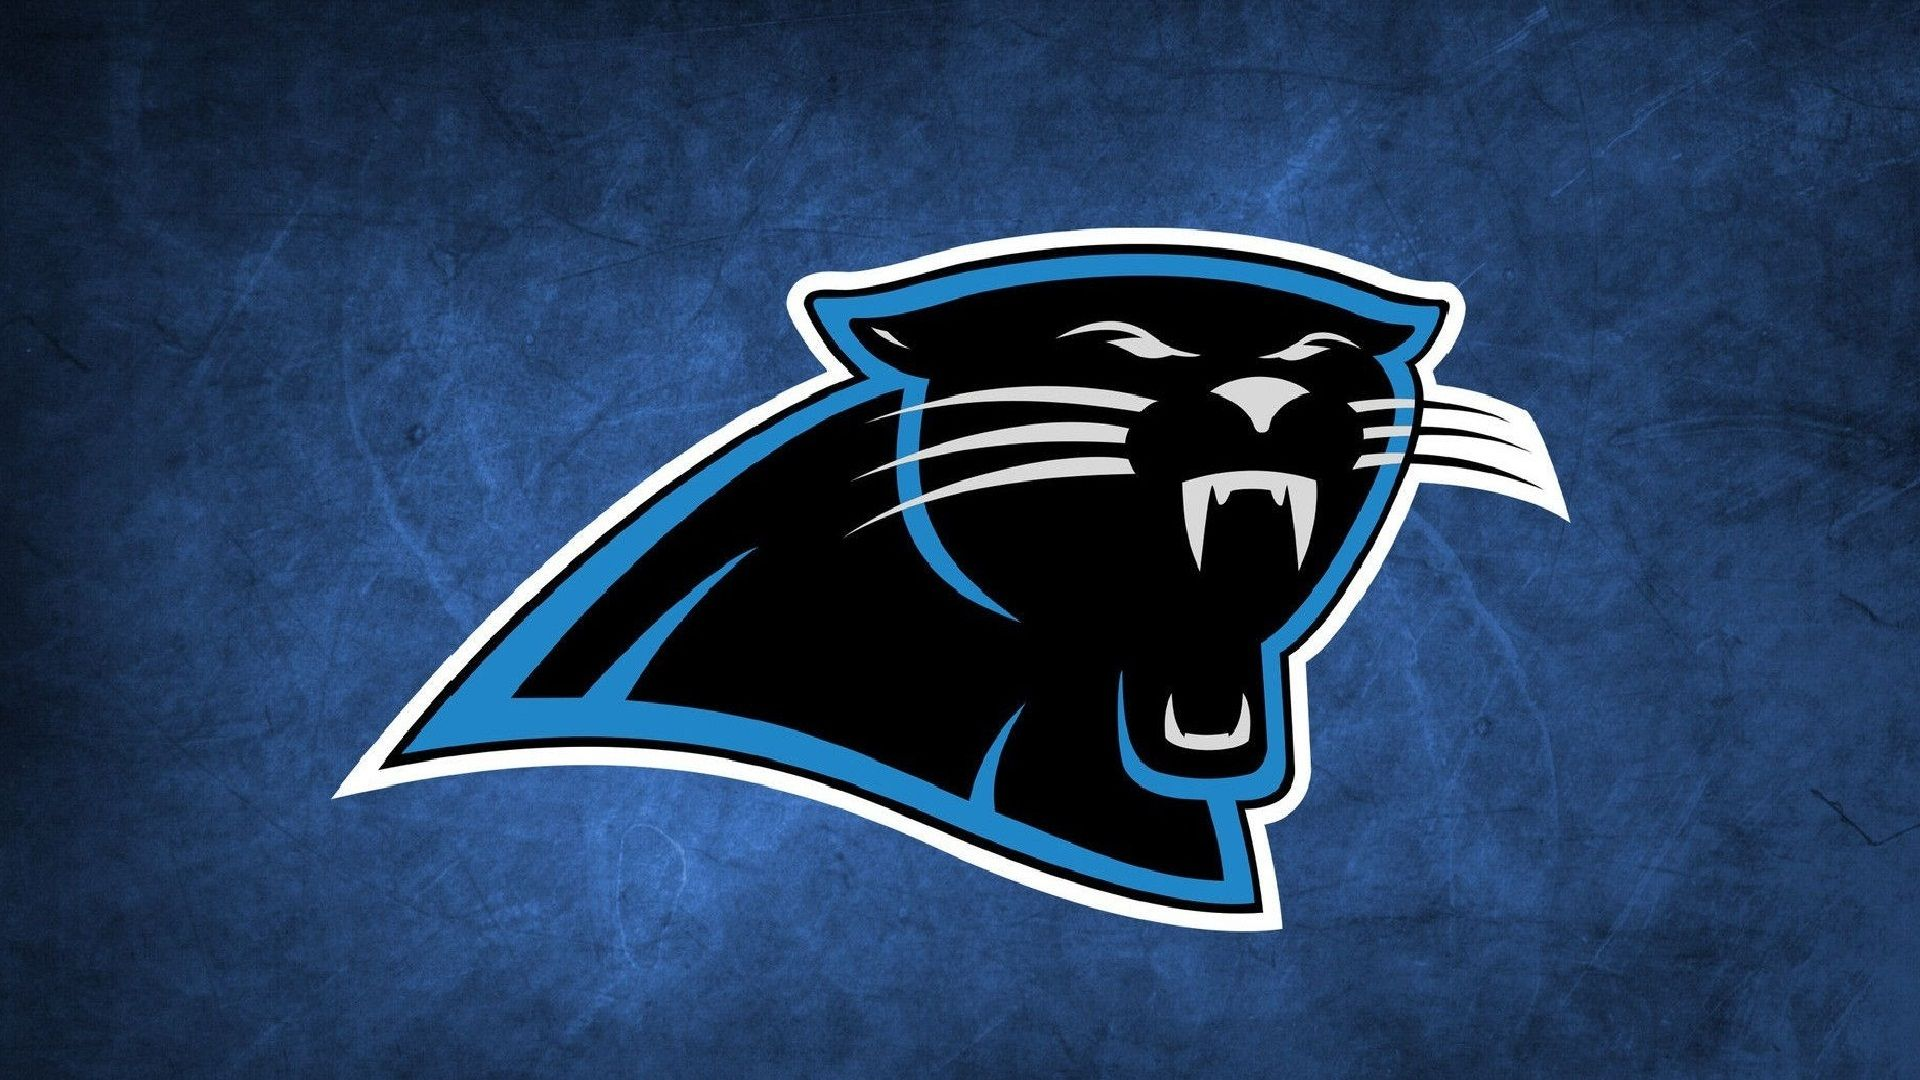 Windows Wallpaper Carolina Panthers Wallpapers Carolina 1920x1080